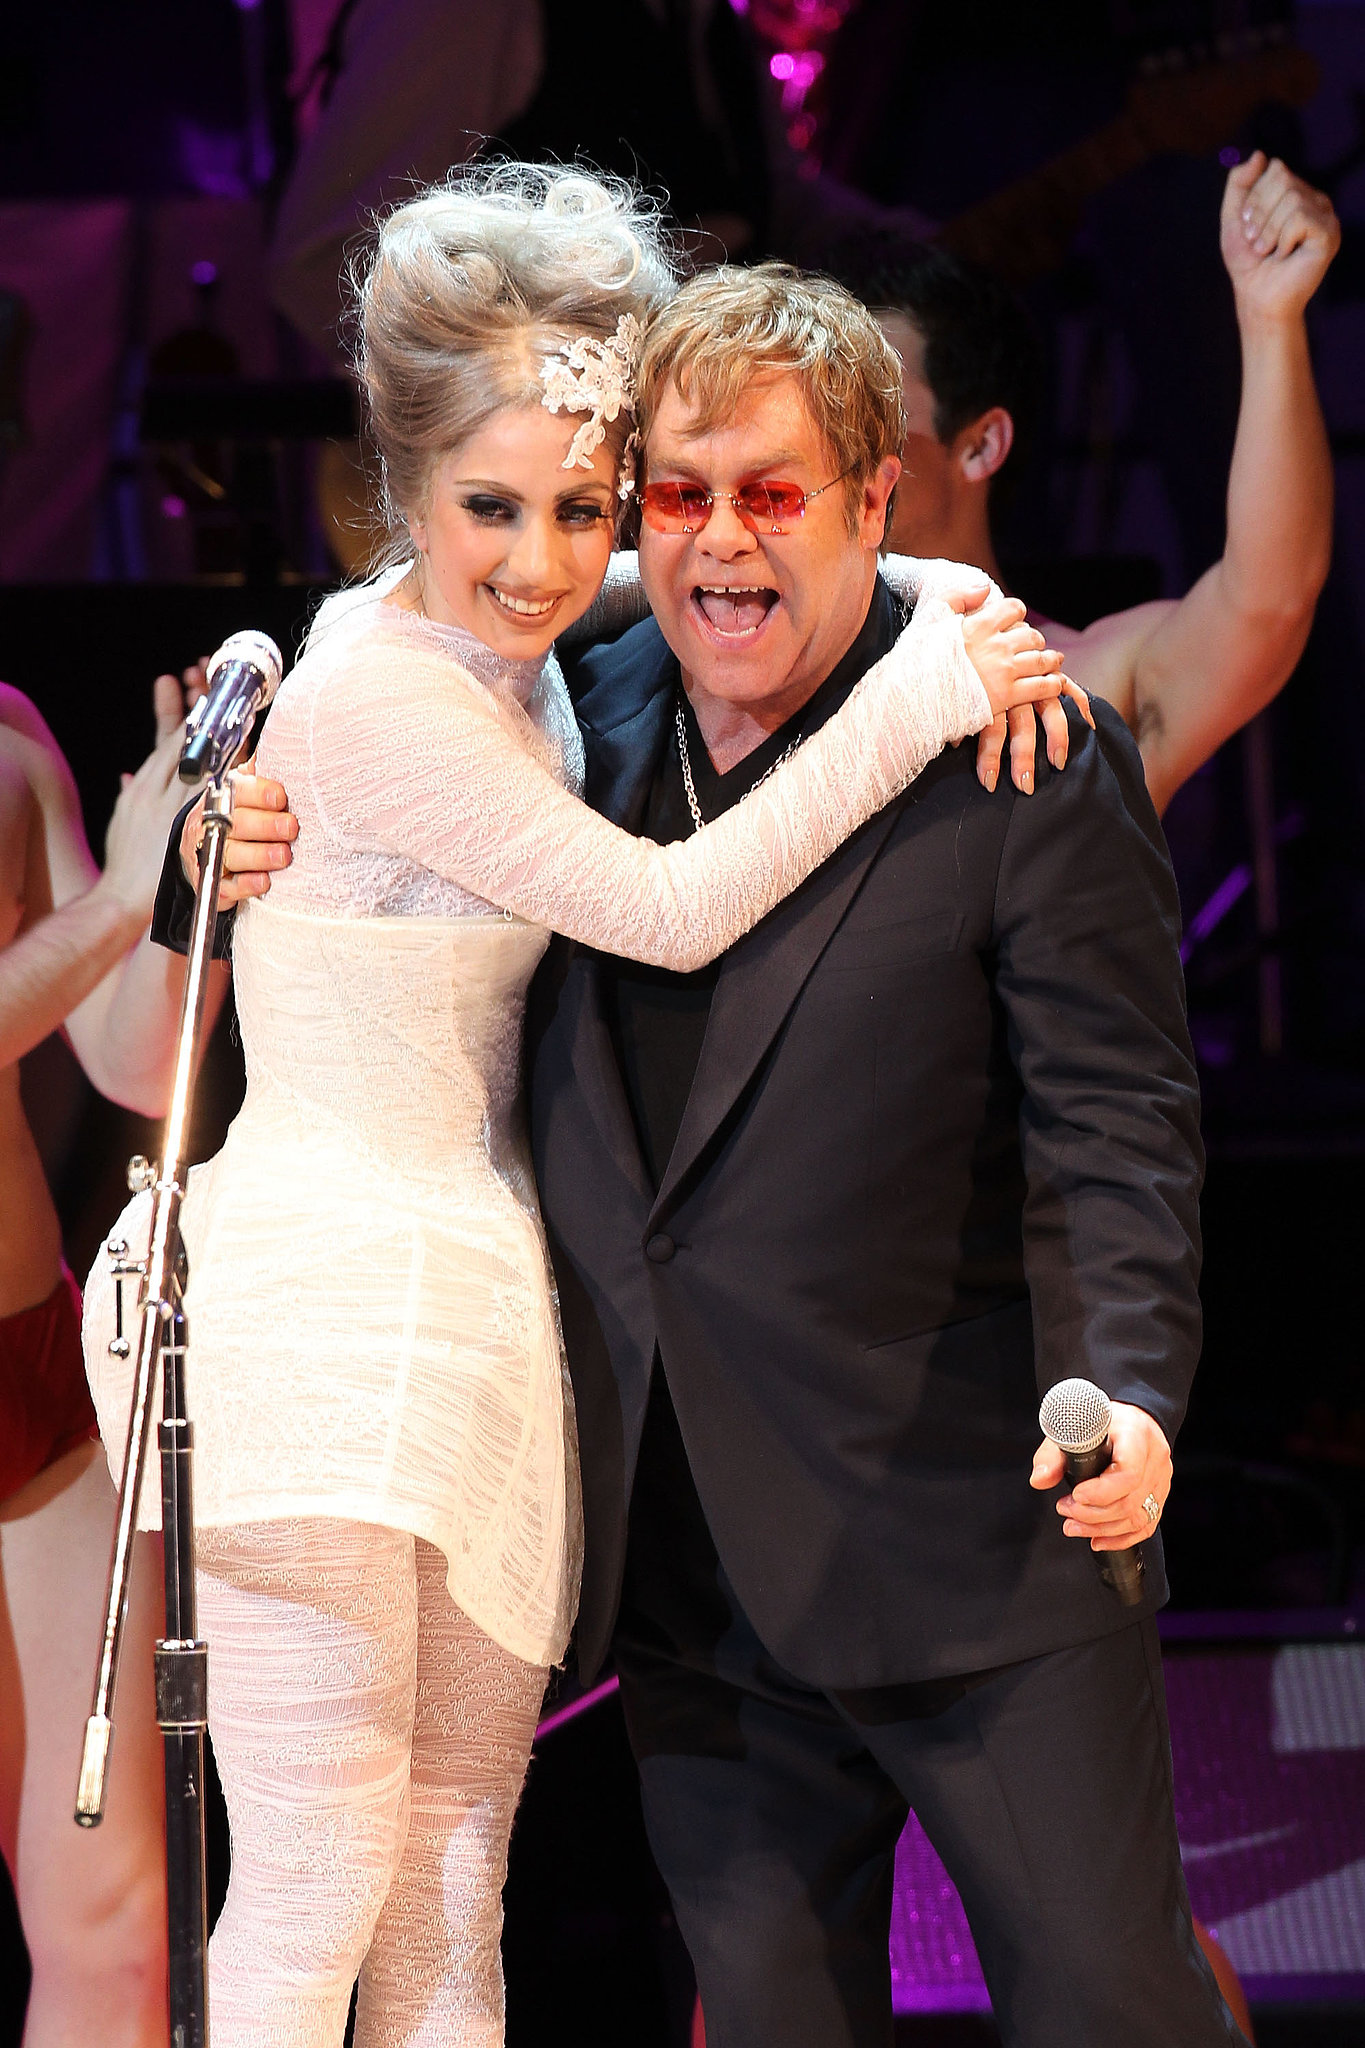 """When Elton John and his husband, David Furnish, welcomed their son Zachary in 2011, they asked Lady Gaga to act as his godmother. The couple confirmed the news in an interview with Barbara Walters, saying, """"When you get to the real person under there, there's a real simple person under there who loves her parents."""" Gaga has clearly done a good job with the role, as Elton and David gave her the title for their second son, Elijah, who was born in April 2013. Elton John may be the ultimate godparent himself, as he's been bestowed with the title by 10 close friends including John Lennon, Elizabeth Hurley, and. . ."""